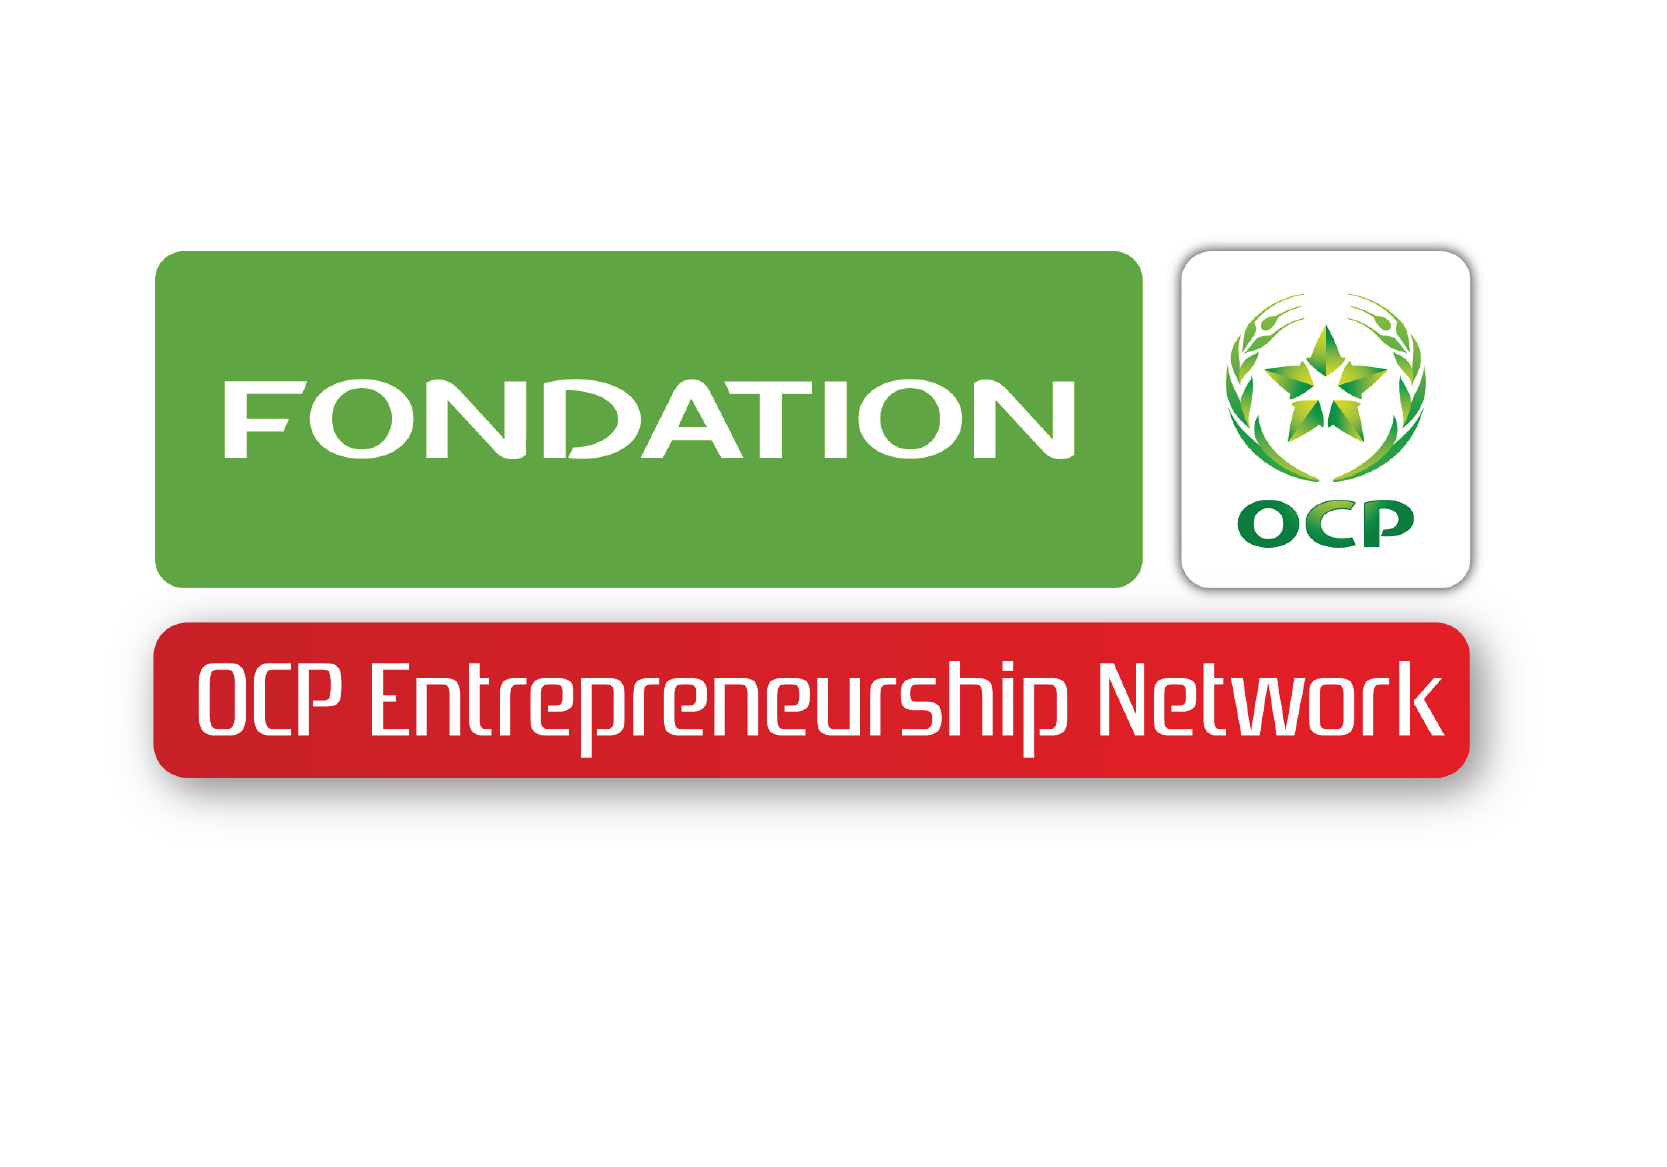 OCP Entrepreneurship Network